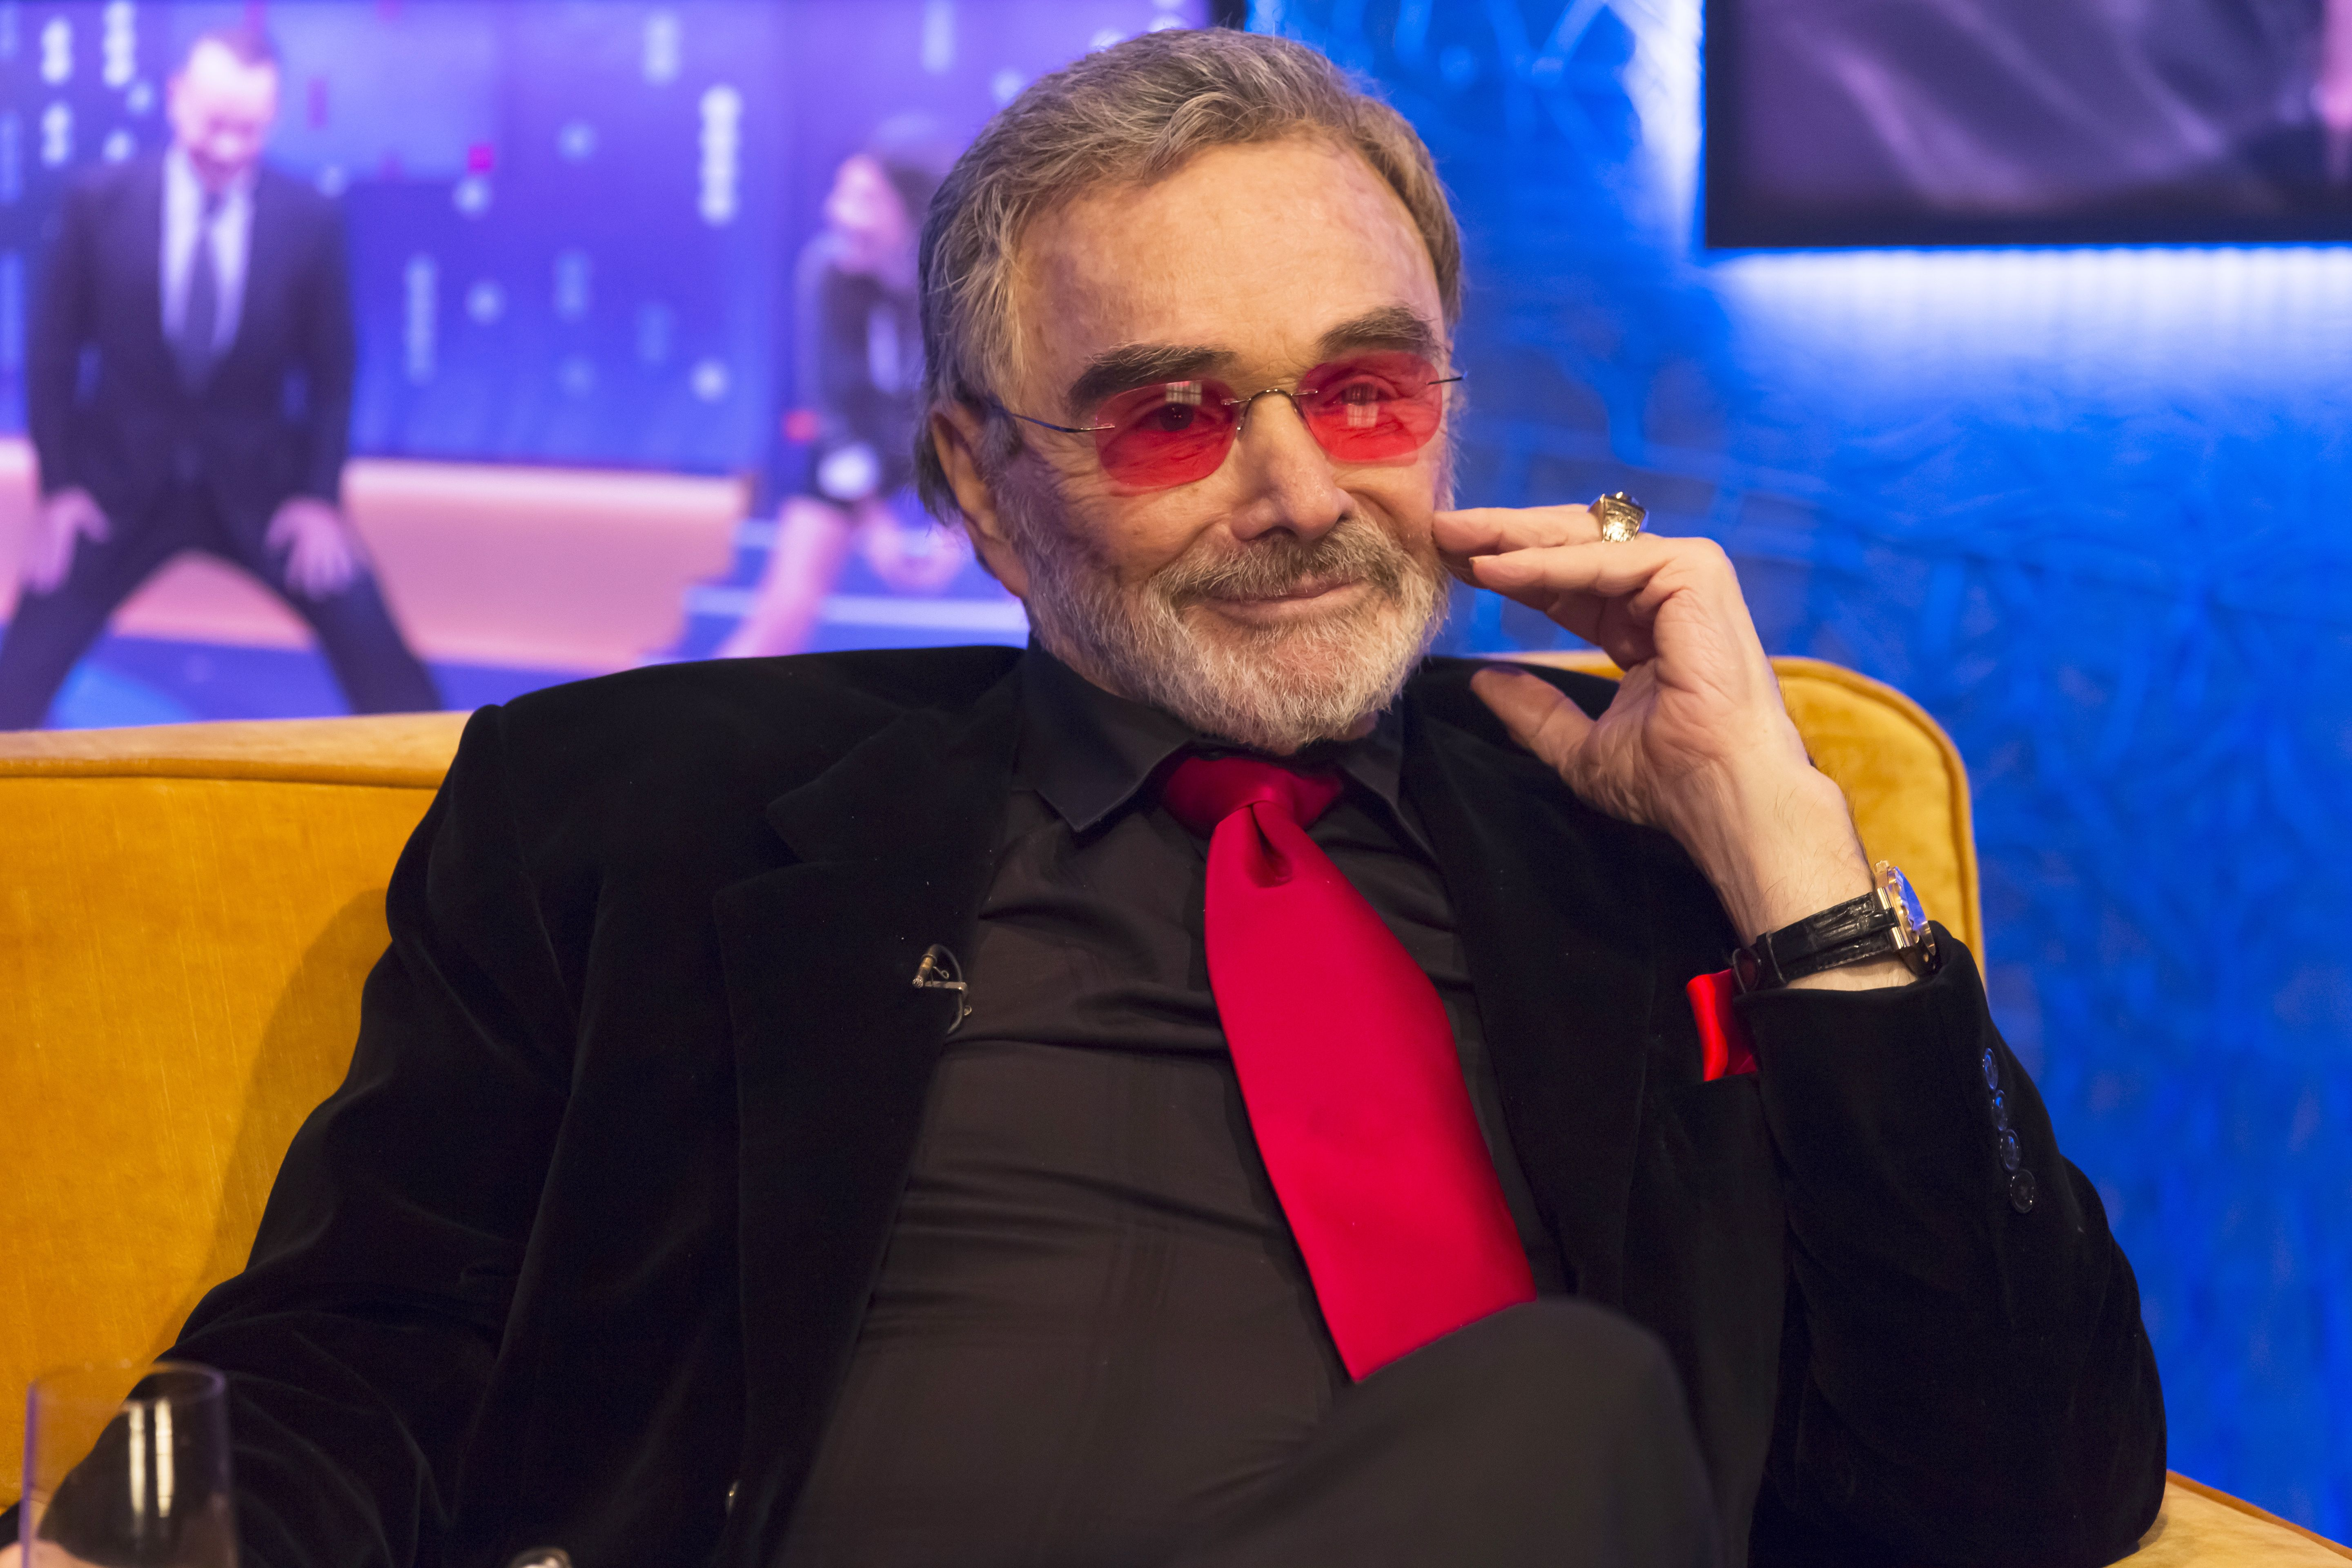 Burt Reynolds' Friends and Family Remember the 'Loving' and 'Generous' Star 1 Year After His Death